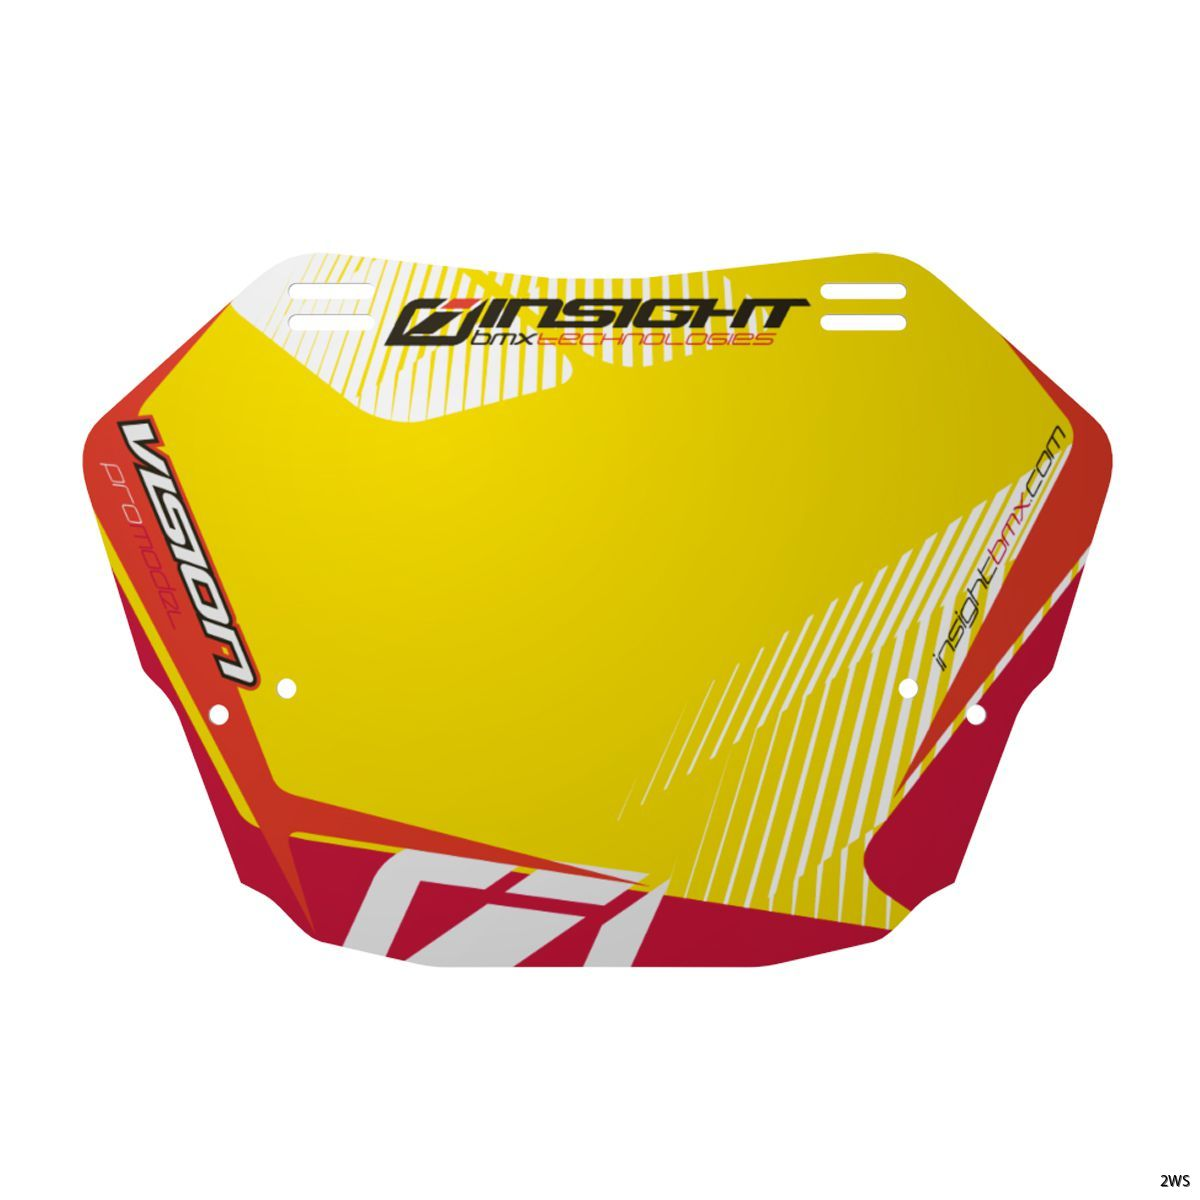 insight-number-plate-vision-pro-yellow